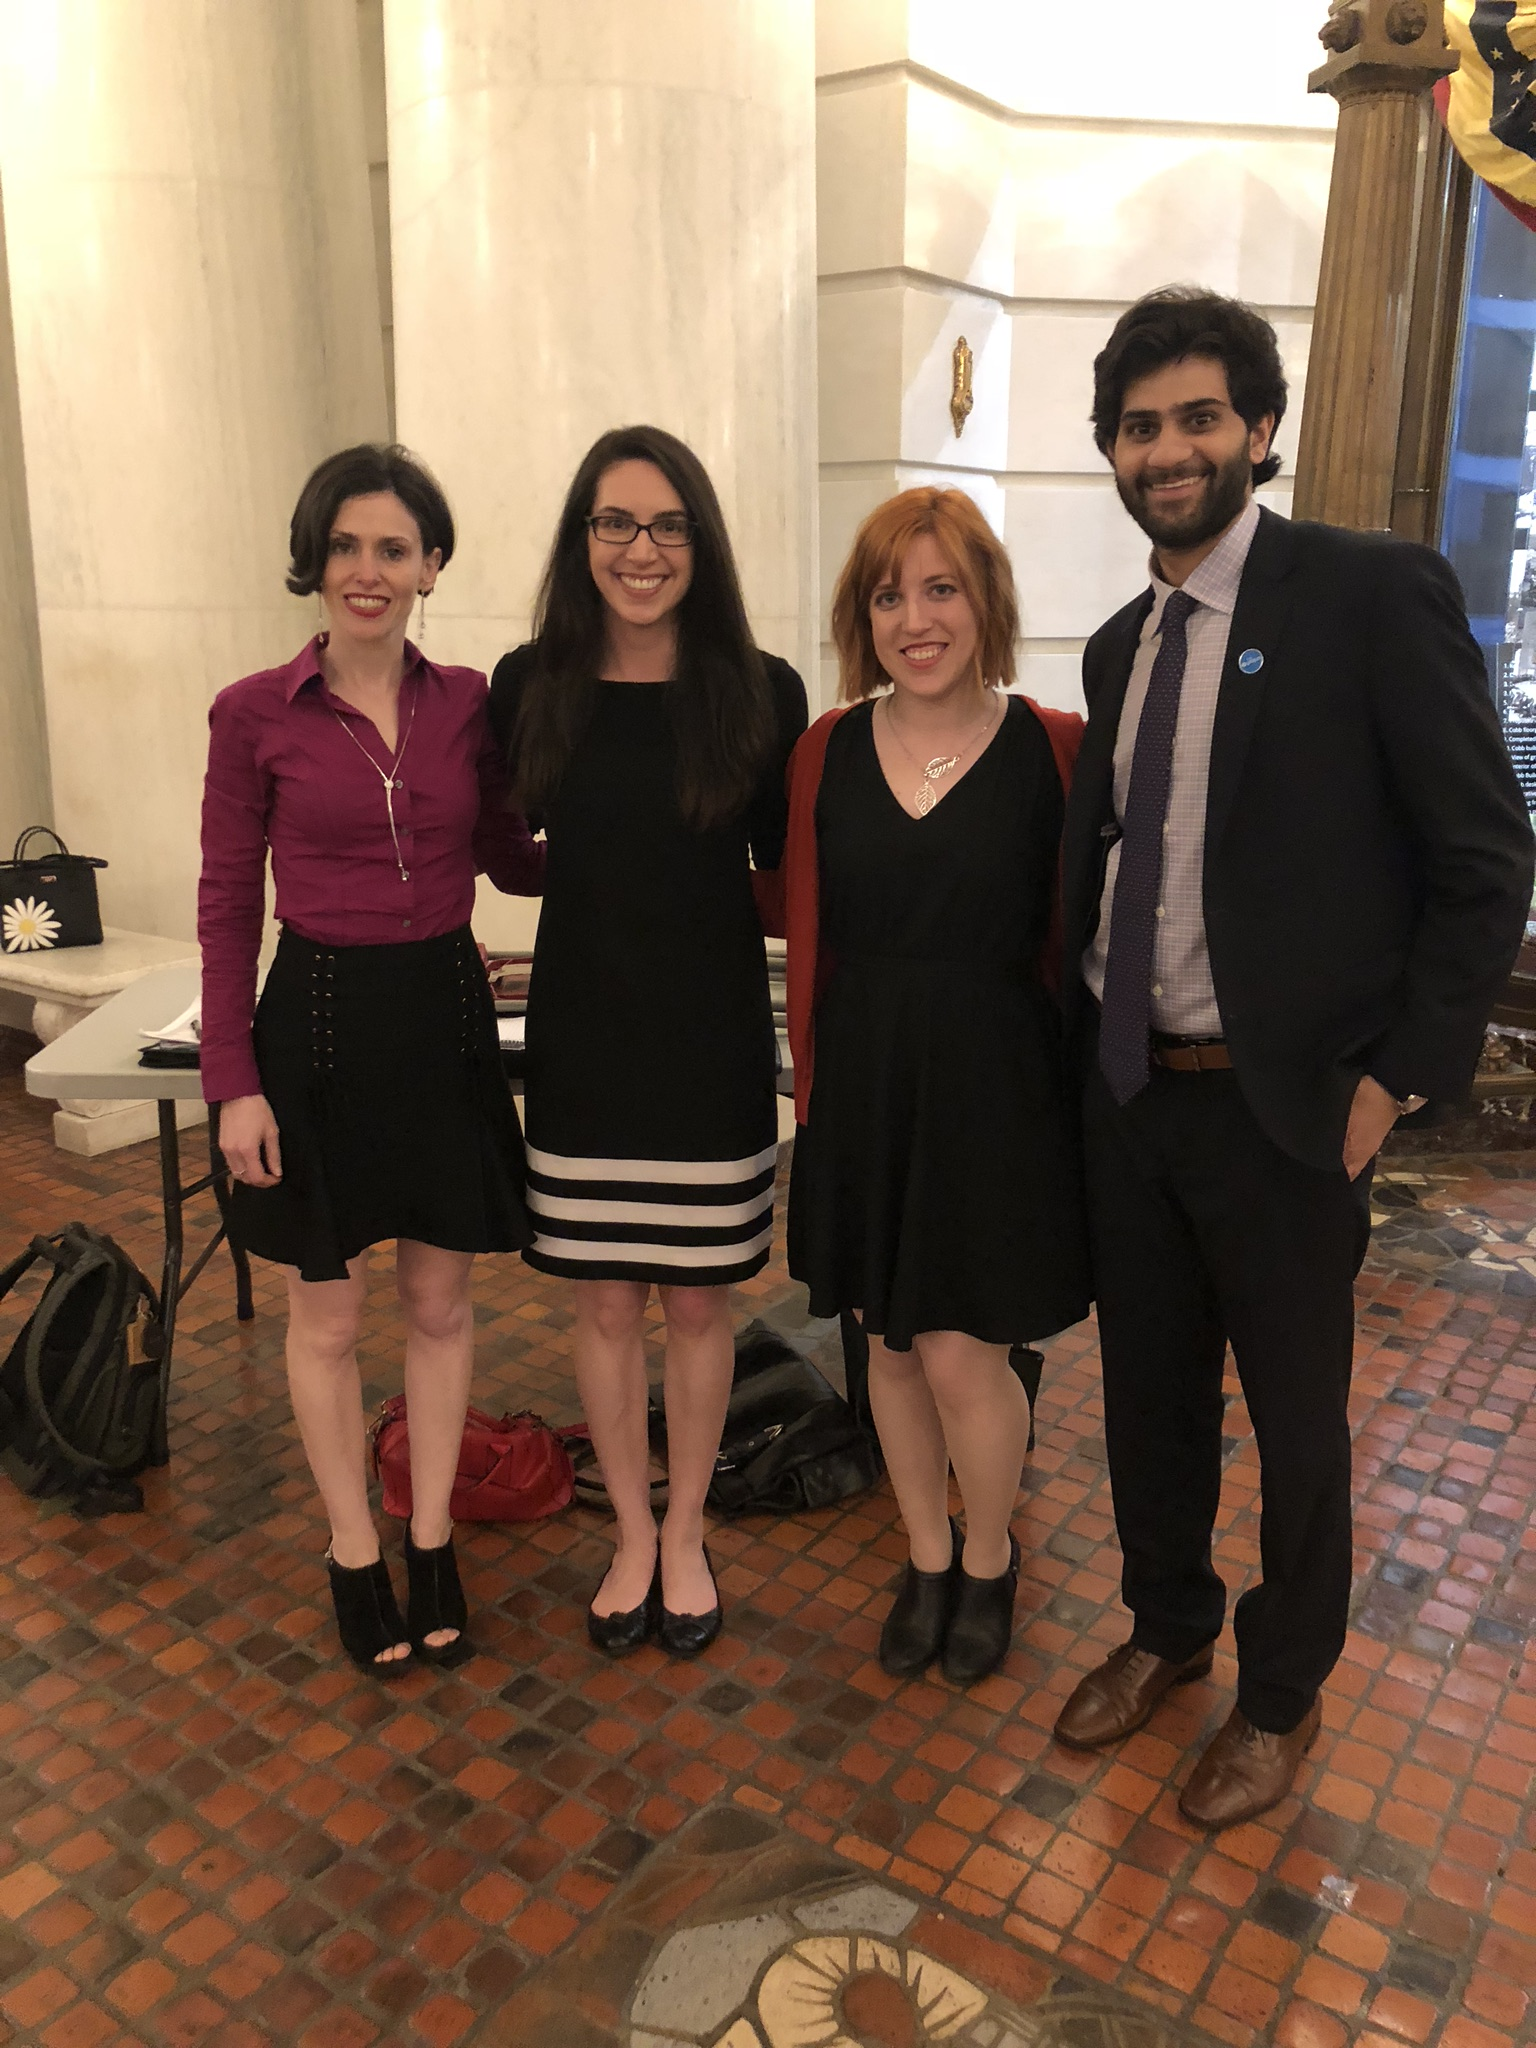 Fraidy Reiss, Sabrina Moldt, Alexandra Boyer Coffey, and Curan Mehra in Harrisburg, PA